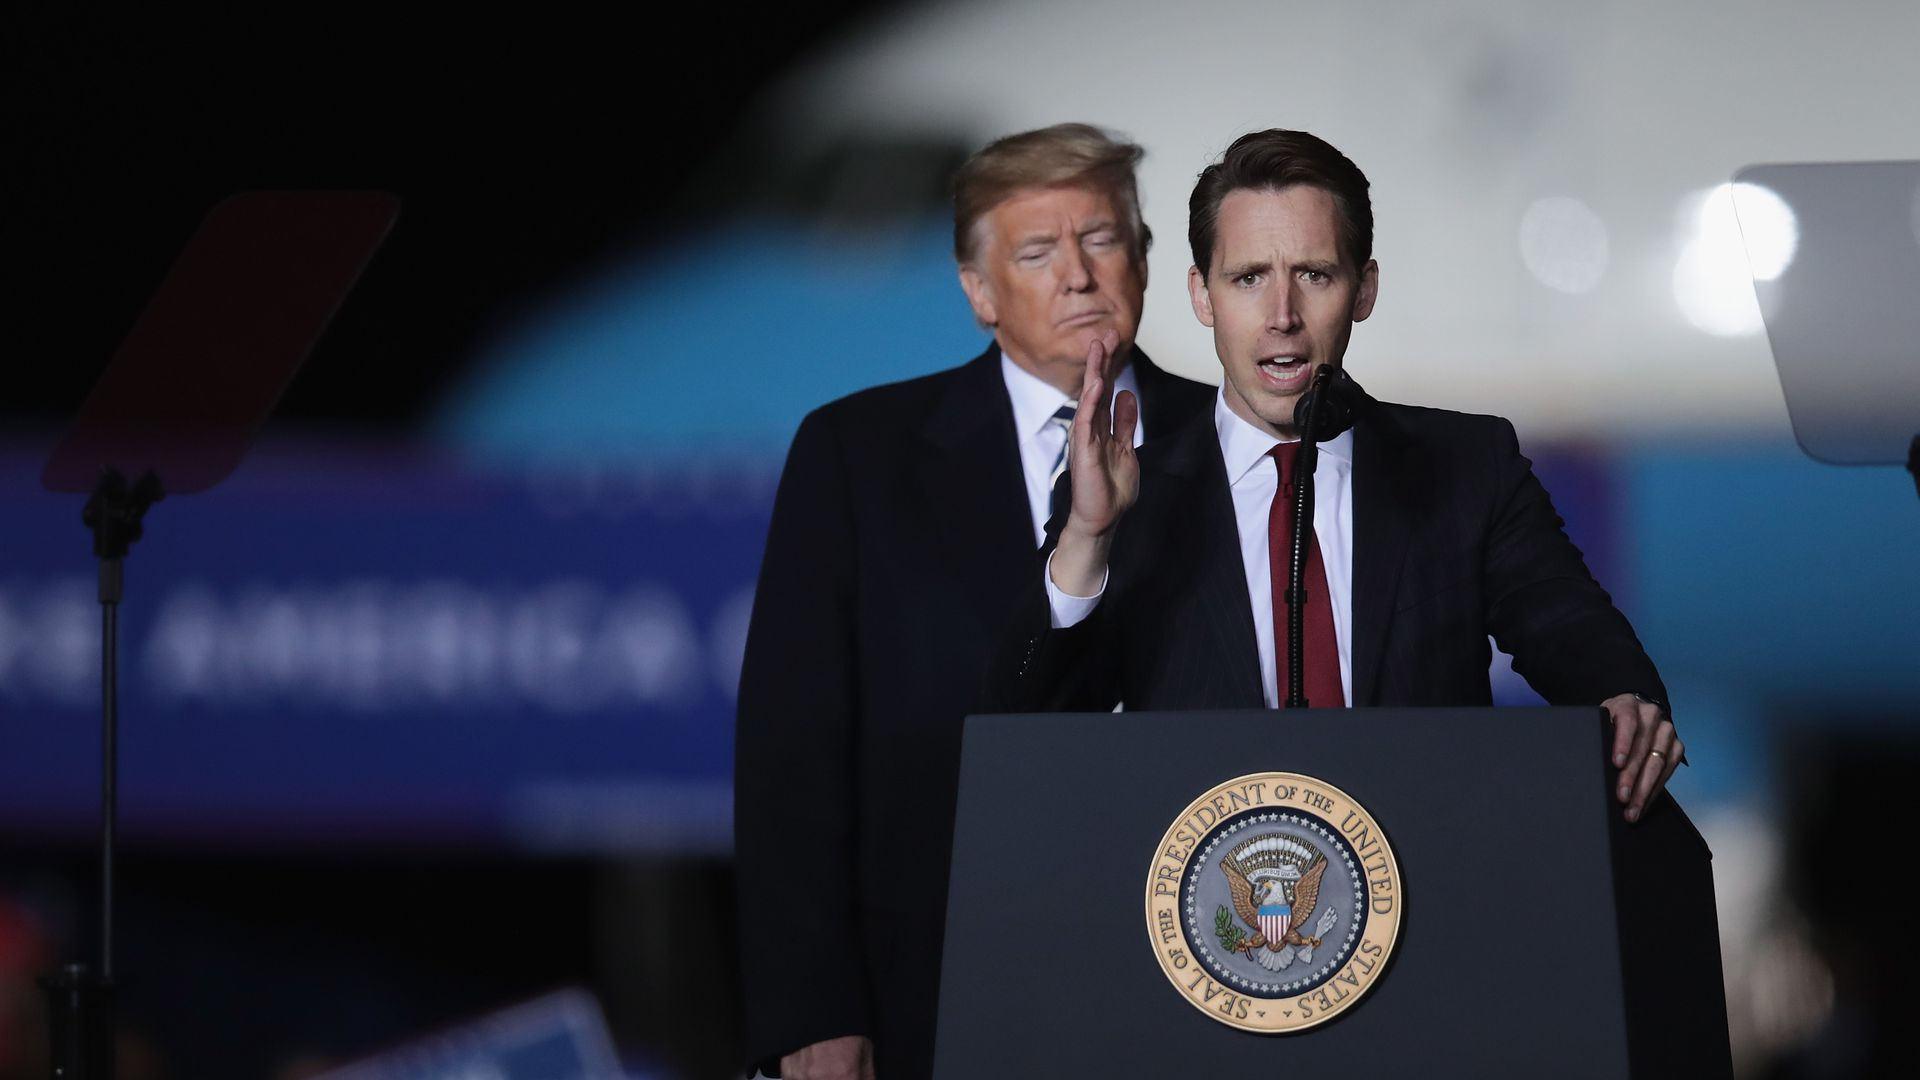 President Trump with Missouri Attorney General Josh Hawley